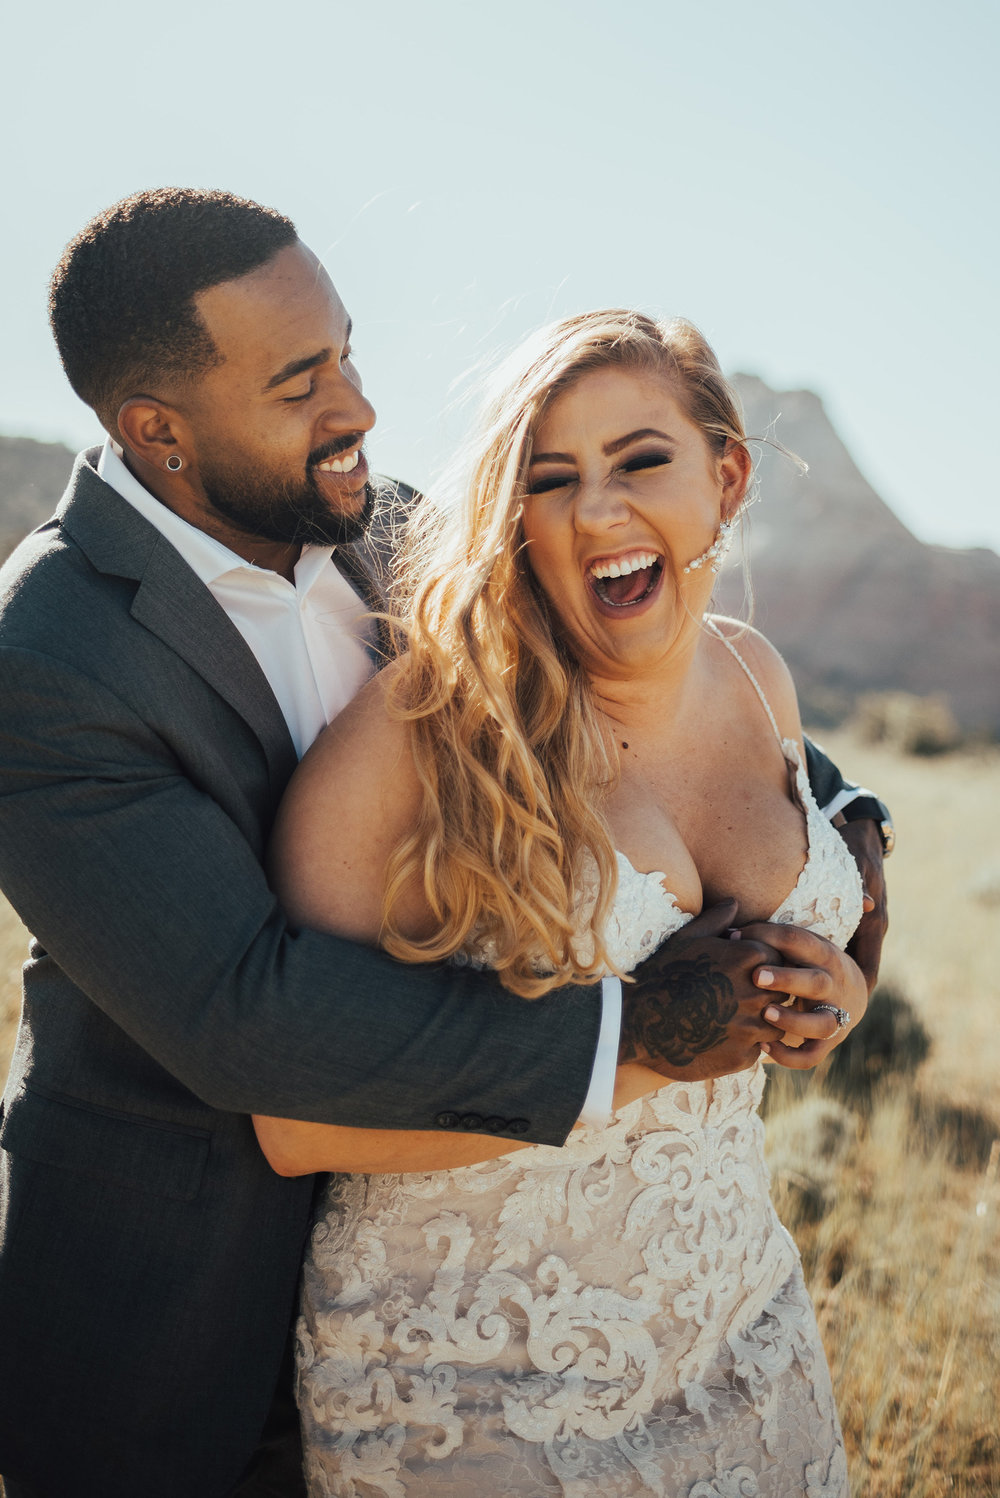 savannah-bridal-shop-ivory-and-beau-maggie-sottero-bride-tuscany-lynette-zion-national-park-wedding-utah-wedding-savannah-wedding-dresses-savannah-wedding-gowns-ashley-smith-photography-vanilla-and-the-bean-22.JPG